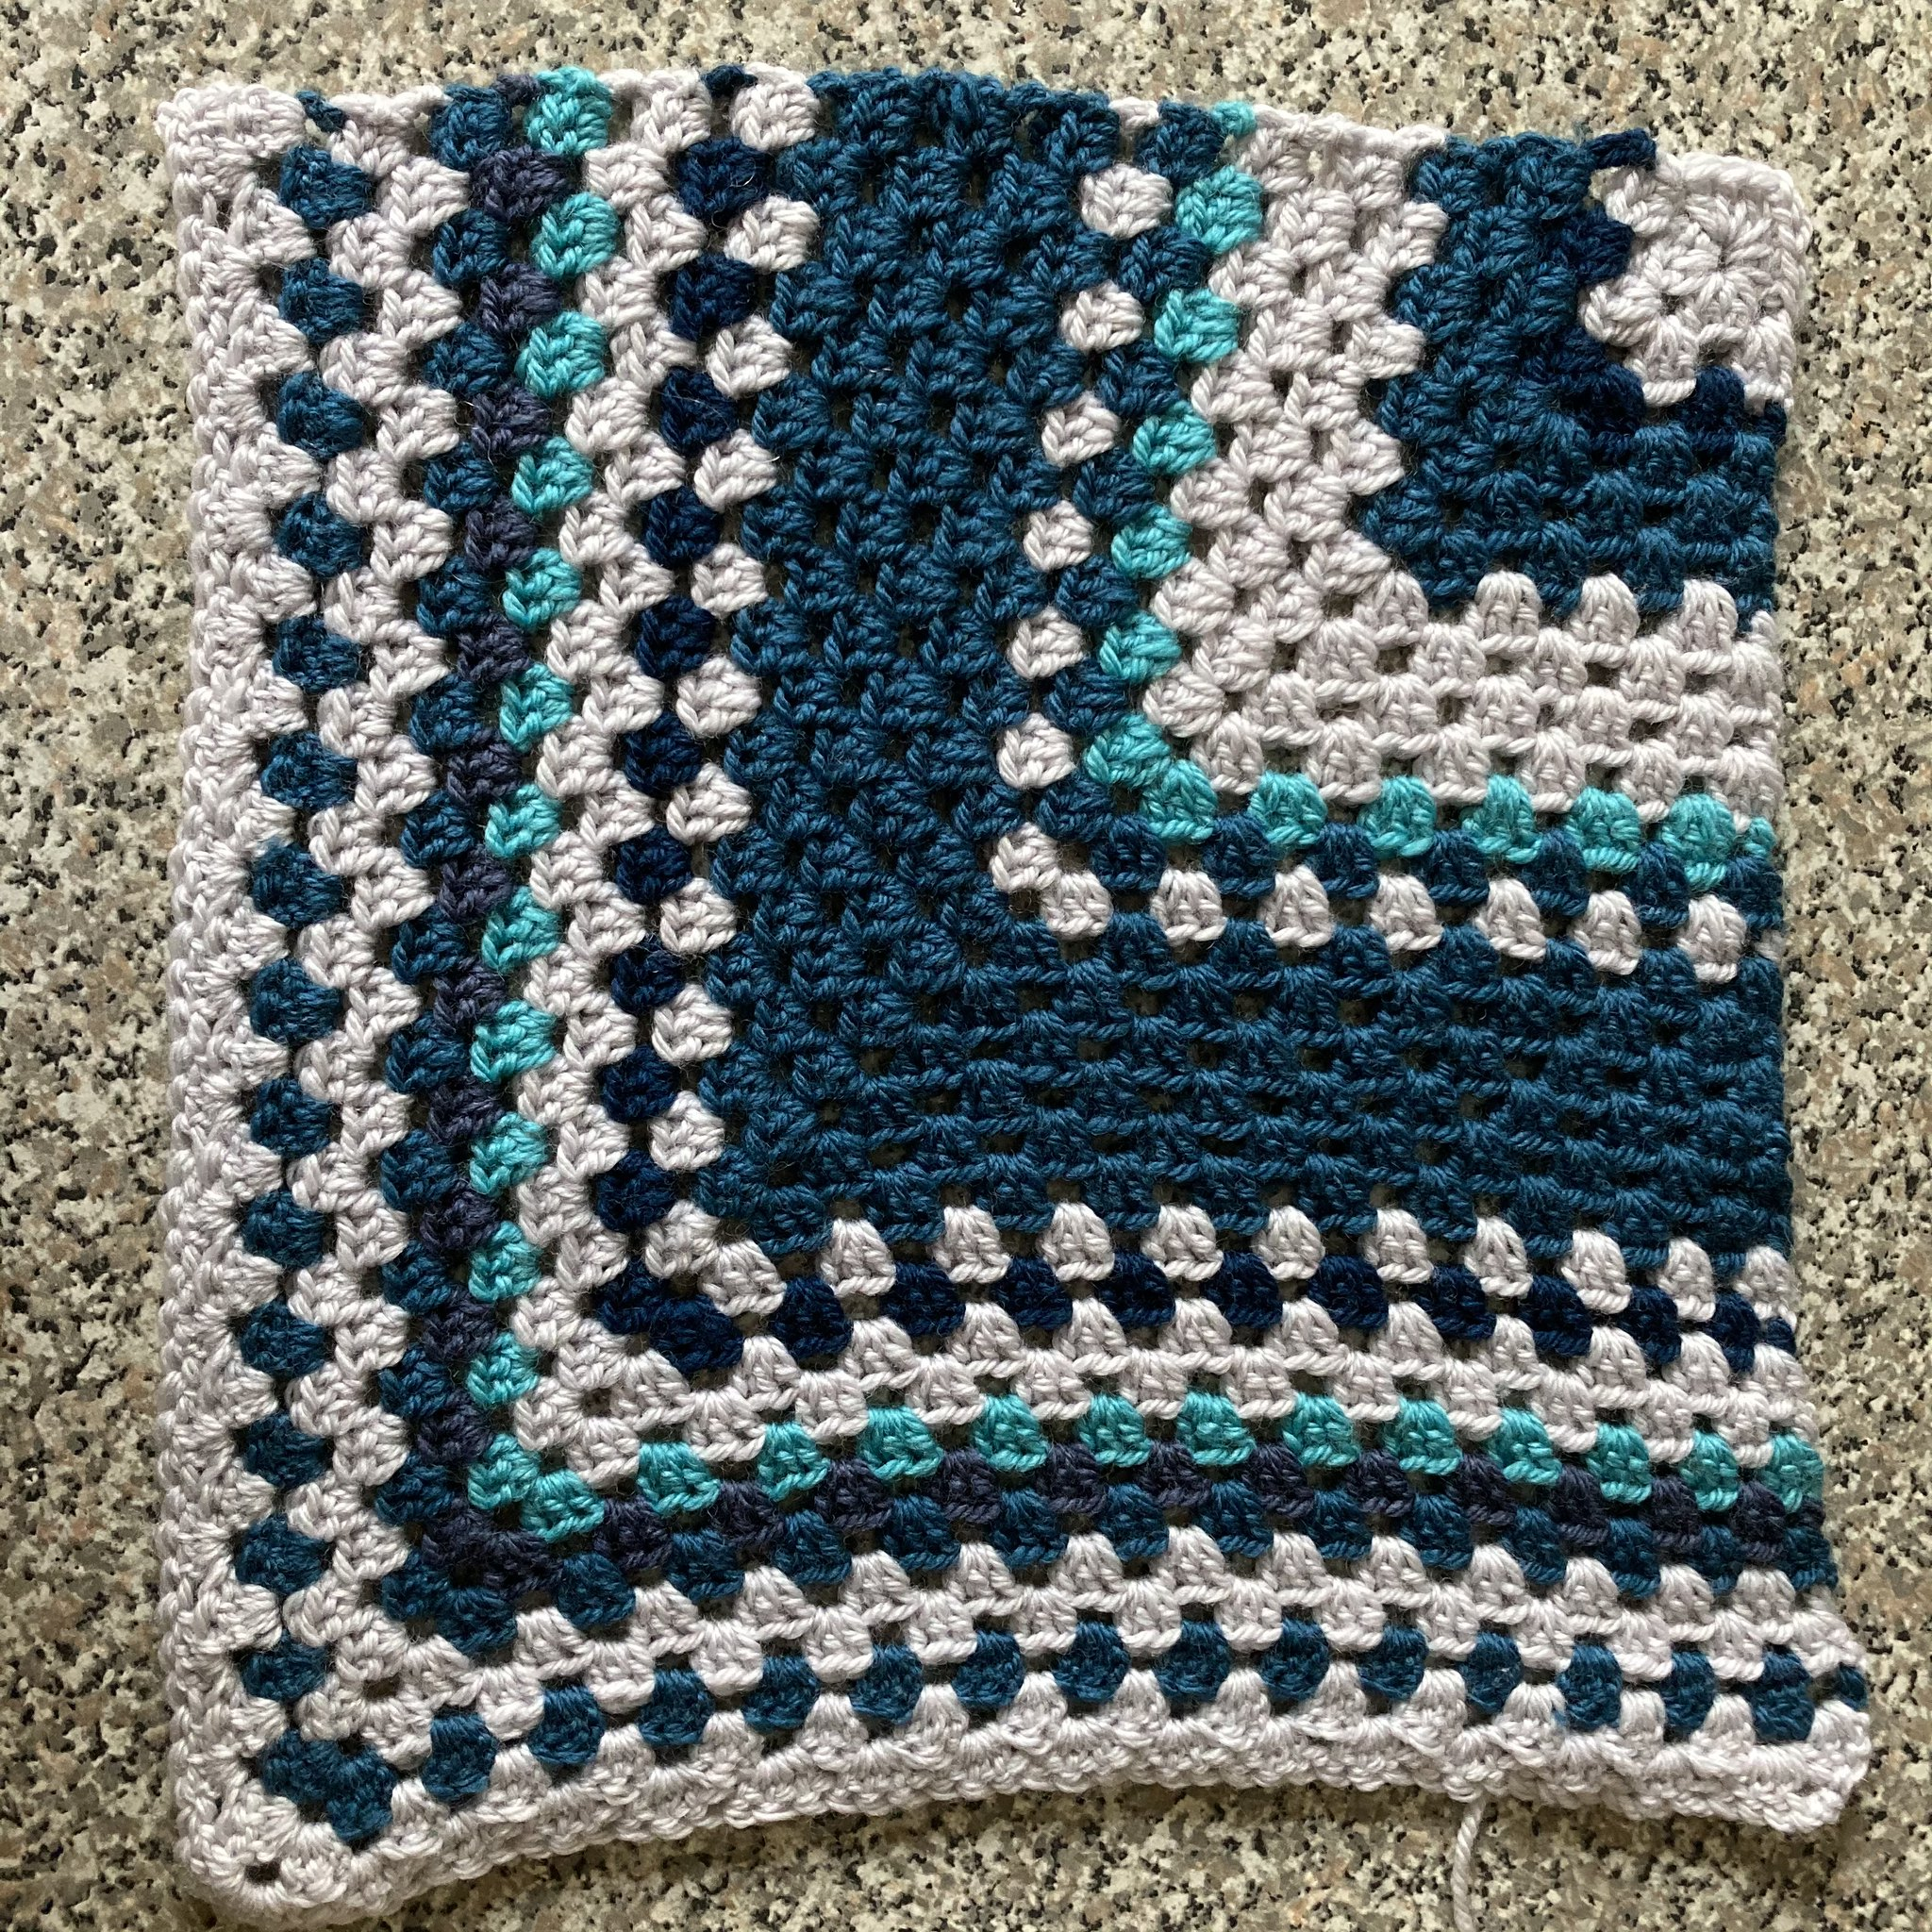 crocheted temperature blanket square with blue and grey yarns